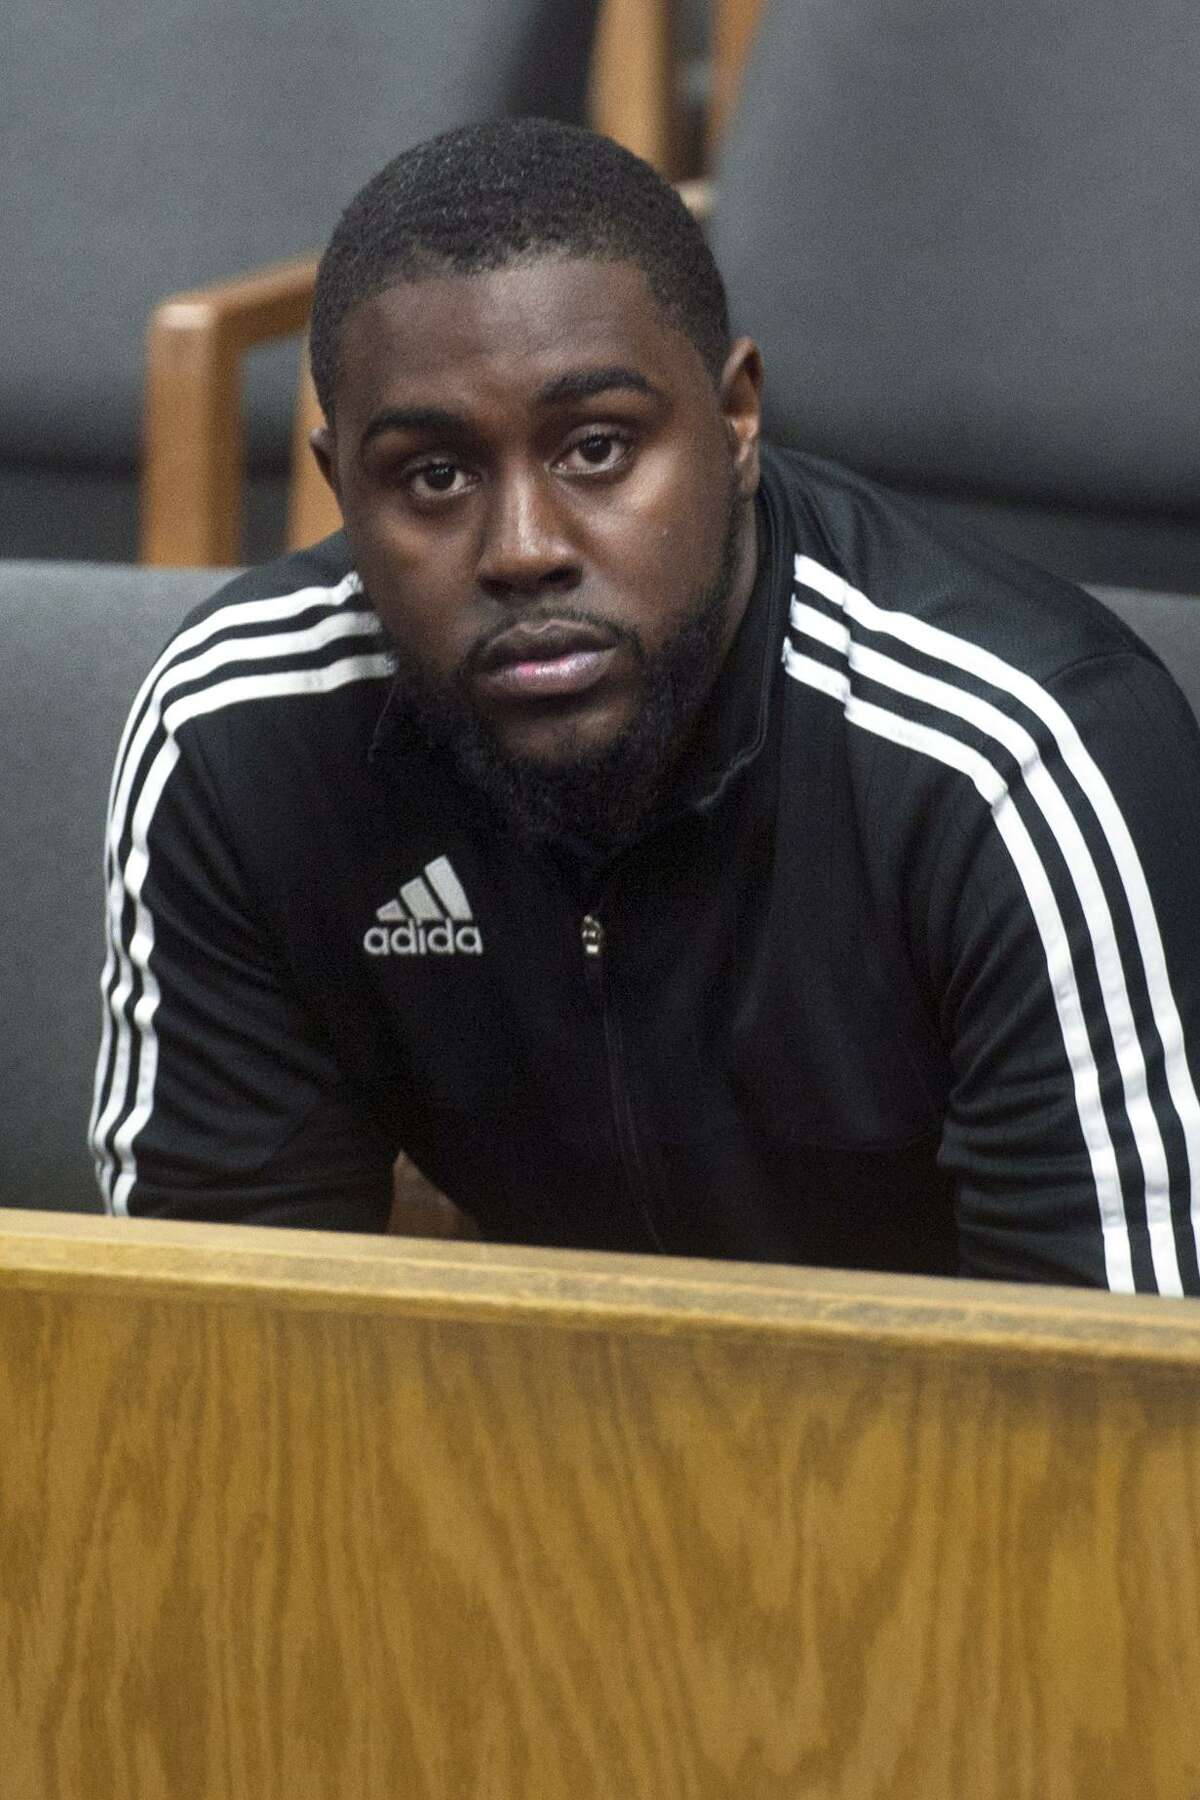 Jermaine Scott appears at his arraignment in Norwalk Superior Court, in Norwalk, Conn. March 12. 2018. Scott was arrested Friday by Norwalk Police on murder charges for the July 2017 shooting of Johnny Lezeau.